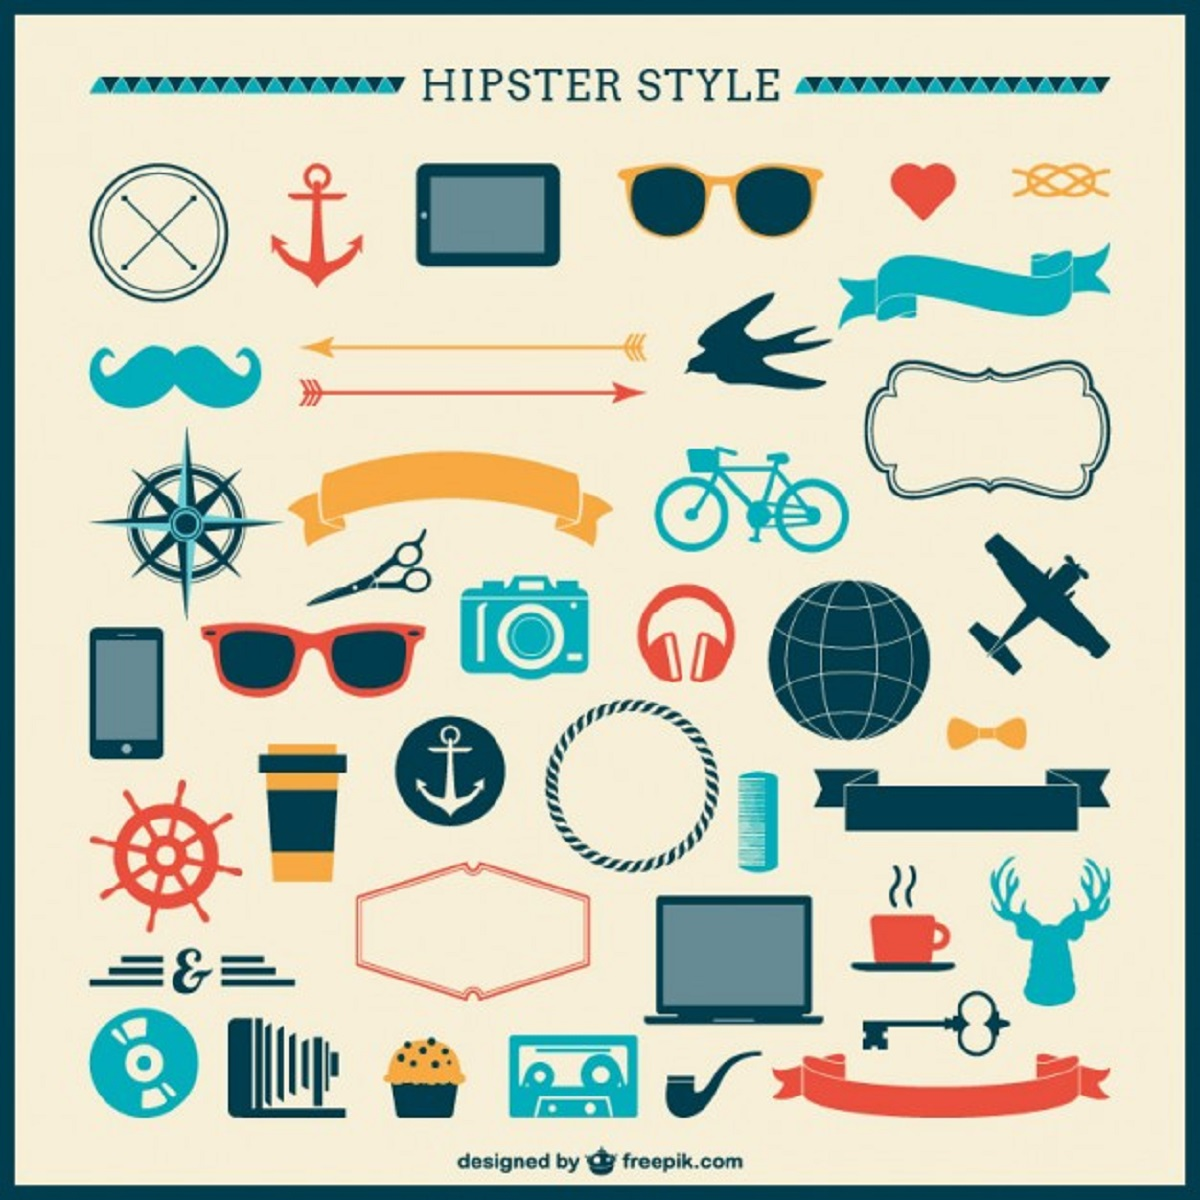 Two Types of Hipsters